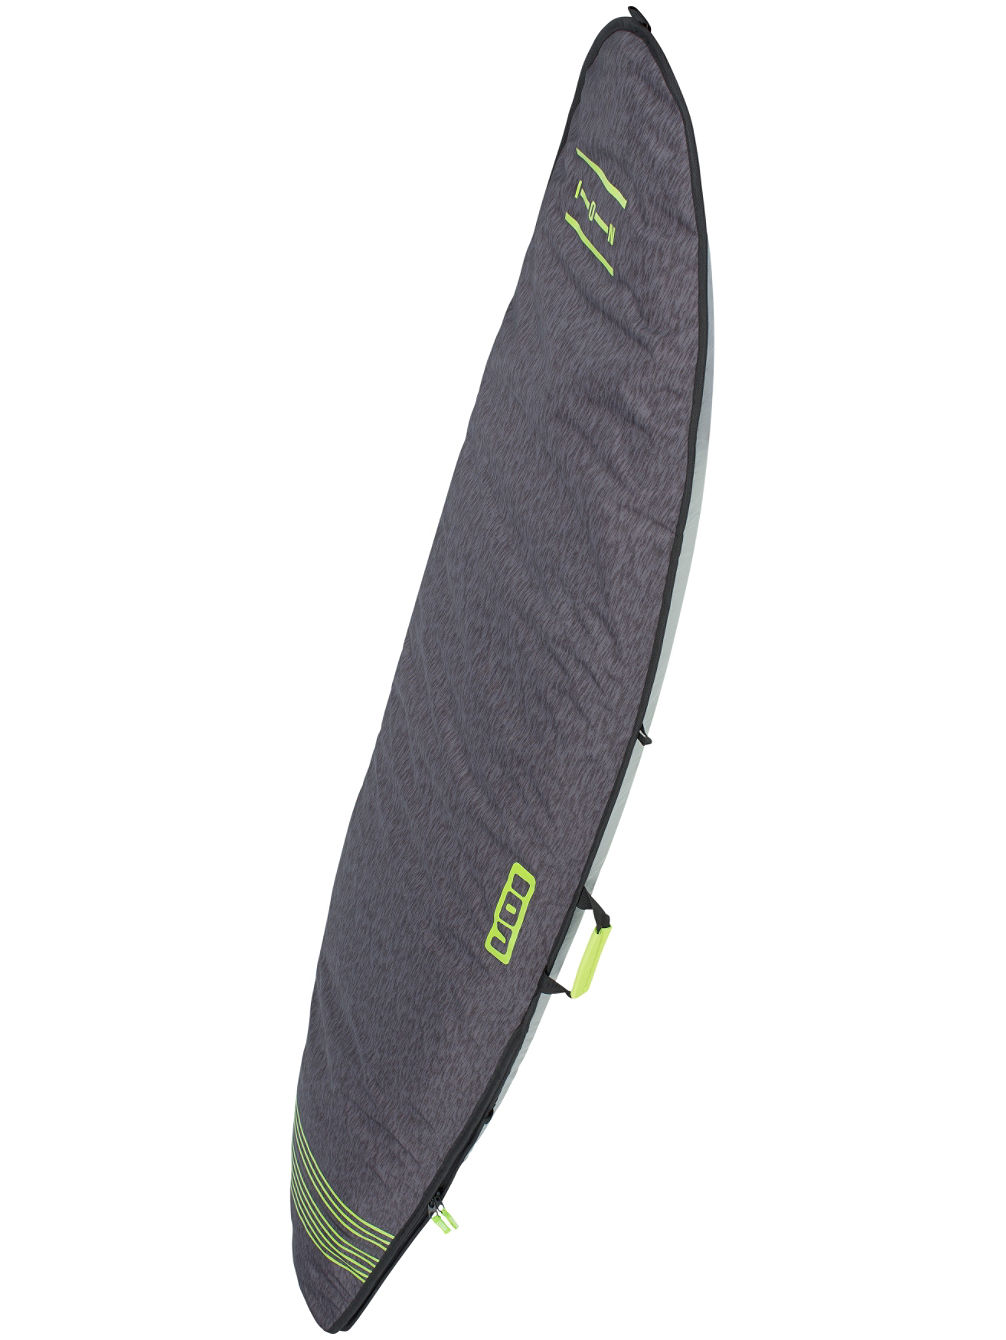 Sup Core 8x32 Surfboard Bag